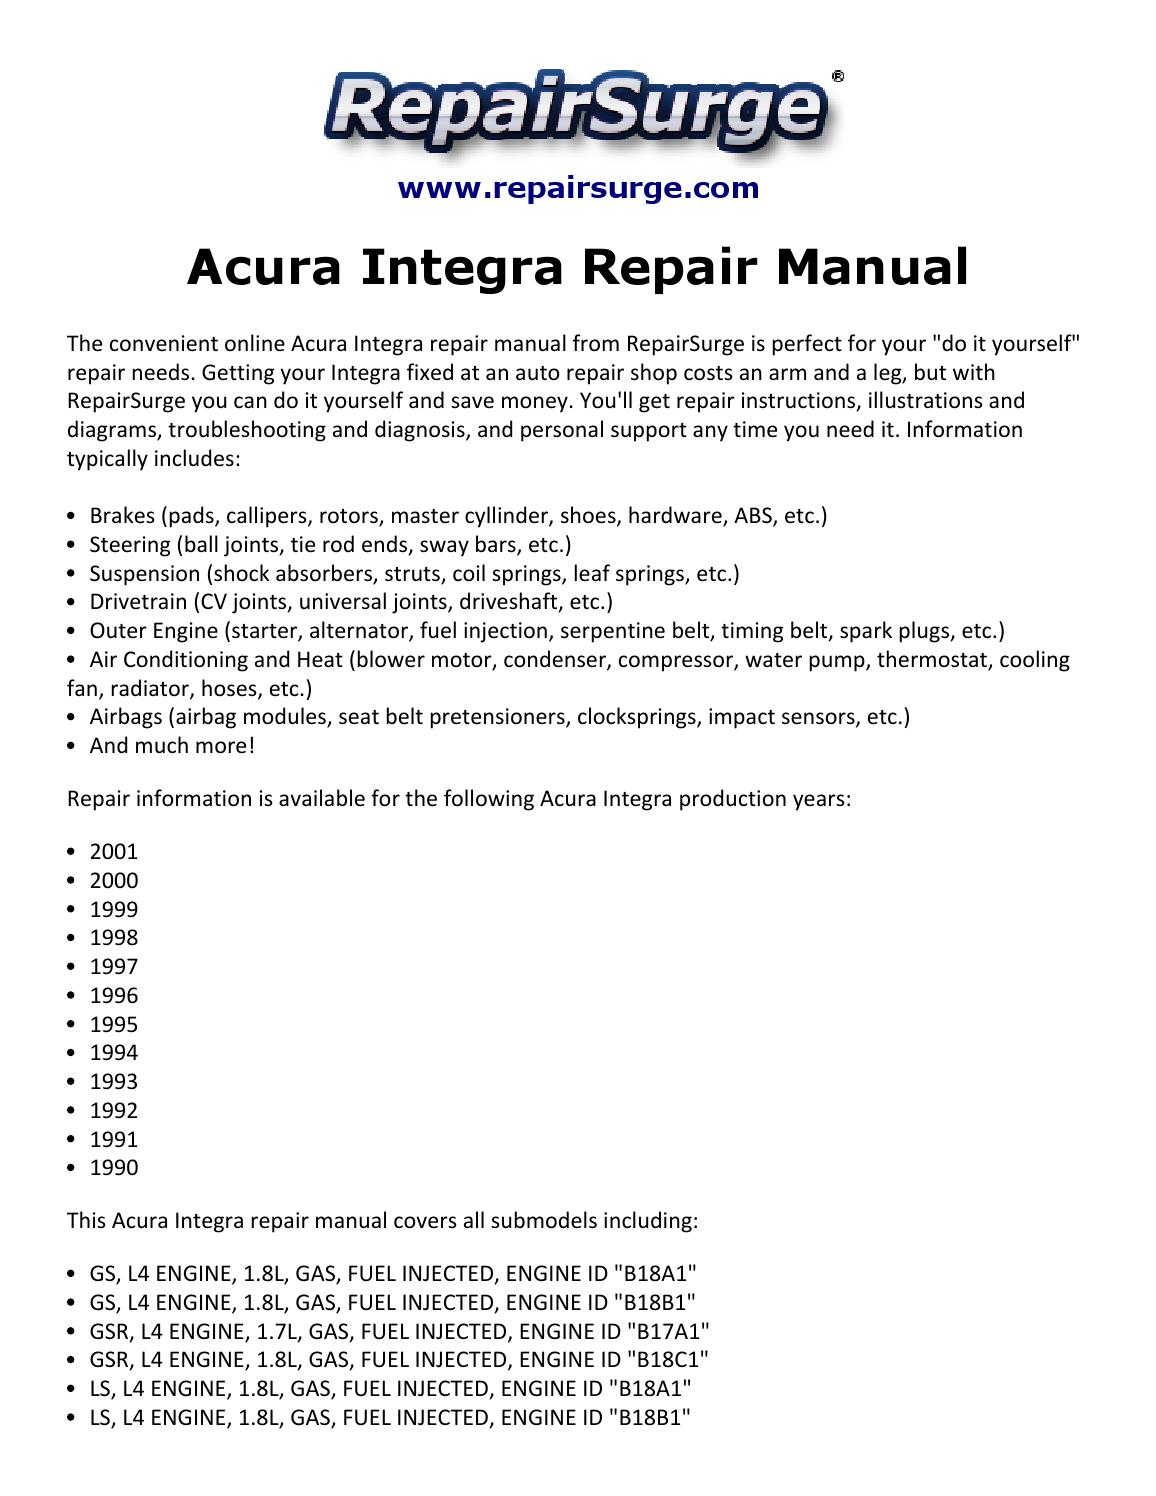 Integra Gsr Owners Manual Dc2 Engine Wiring Diagram Array Acura Repair 1990 2001 By Jasper2334 Issuu Rh